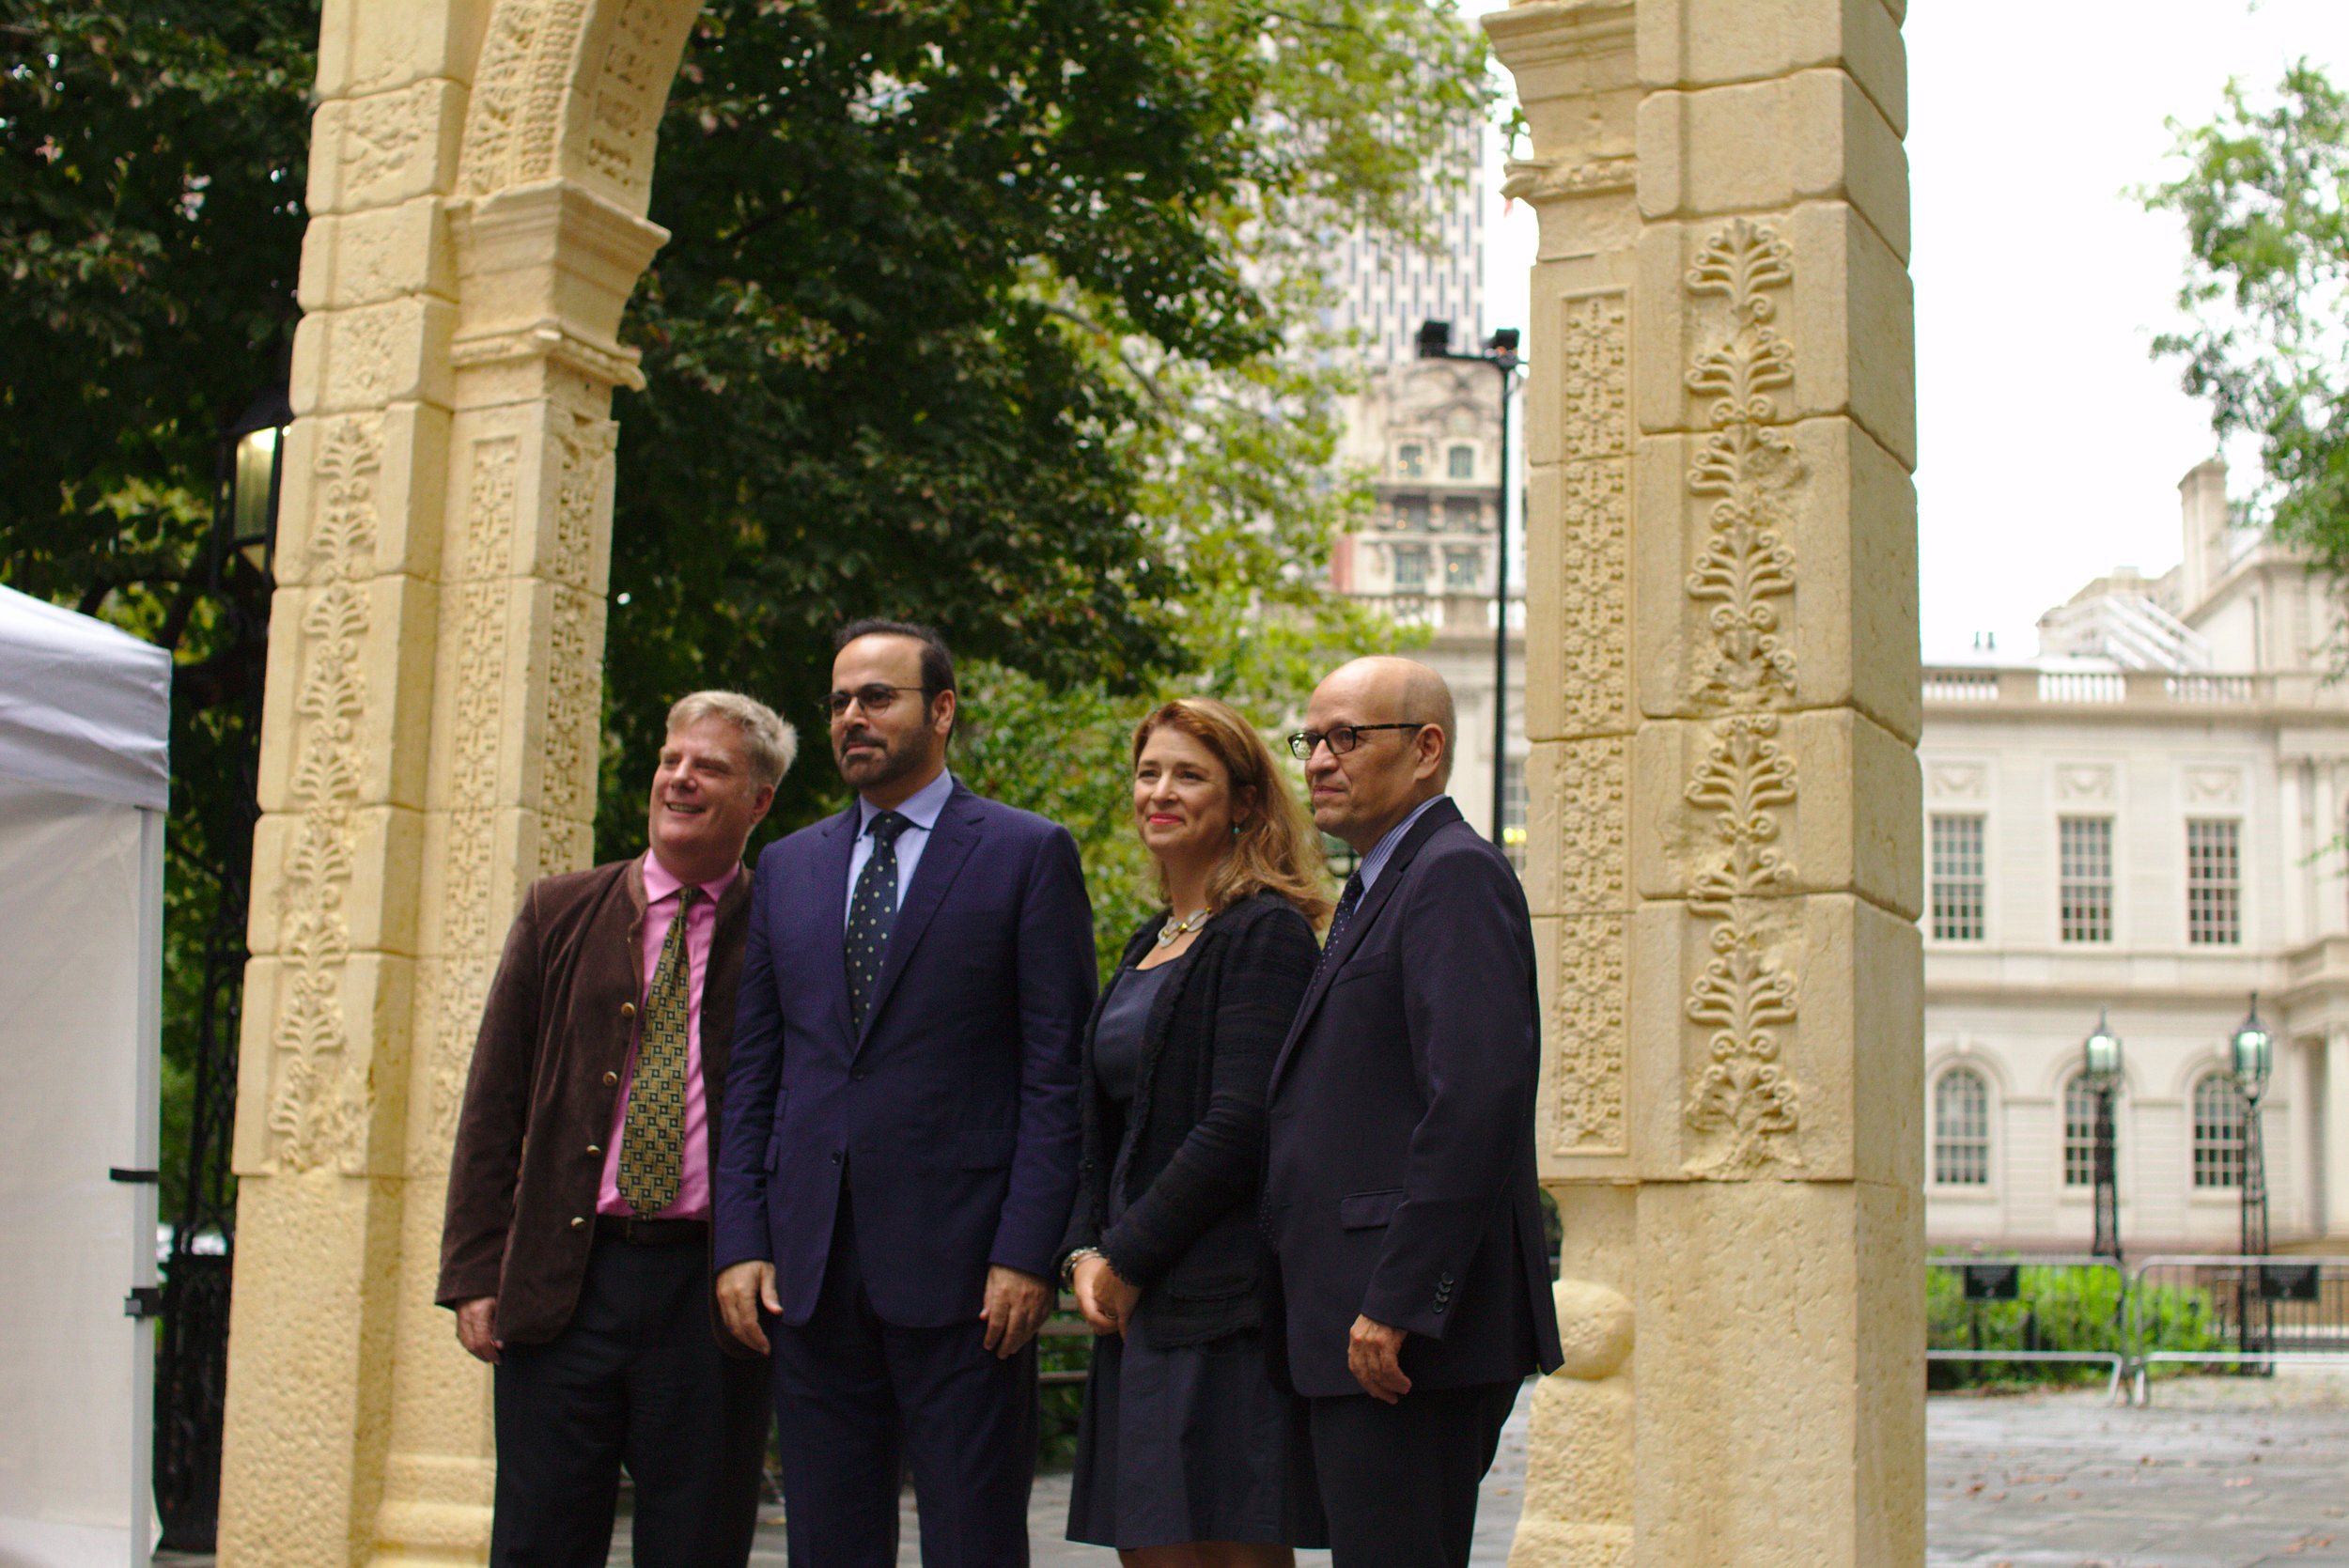 The speakers gather under the Triumphal Arch of Palmyra after its unveiling